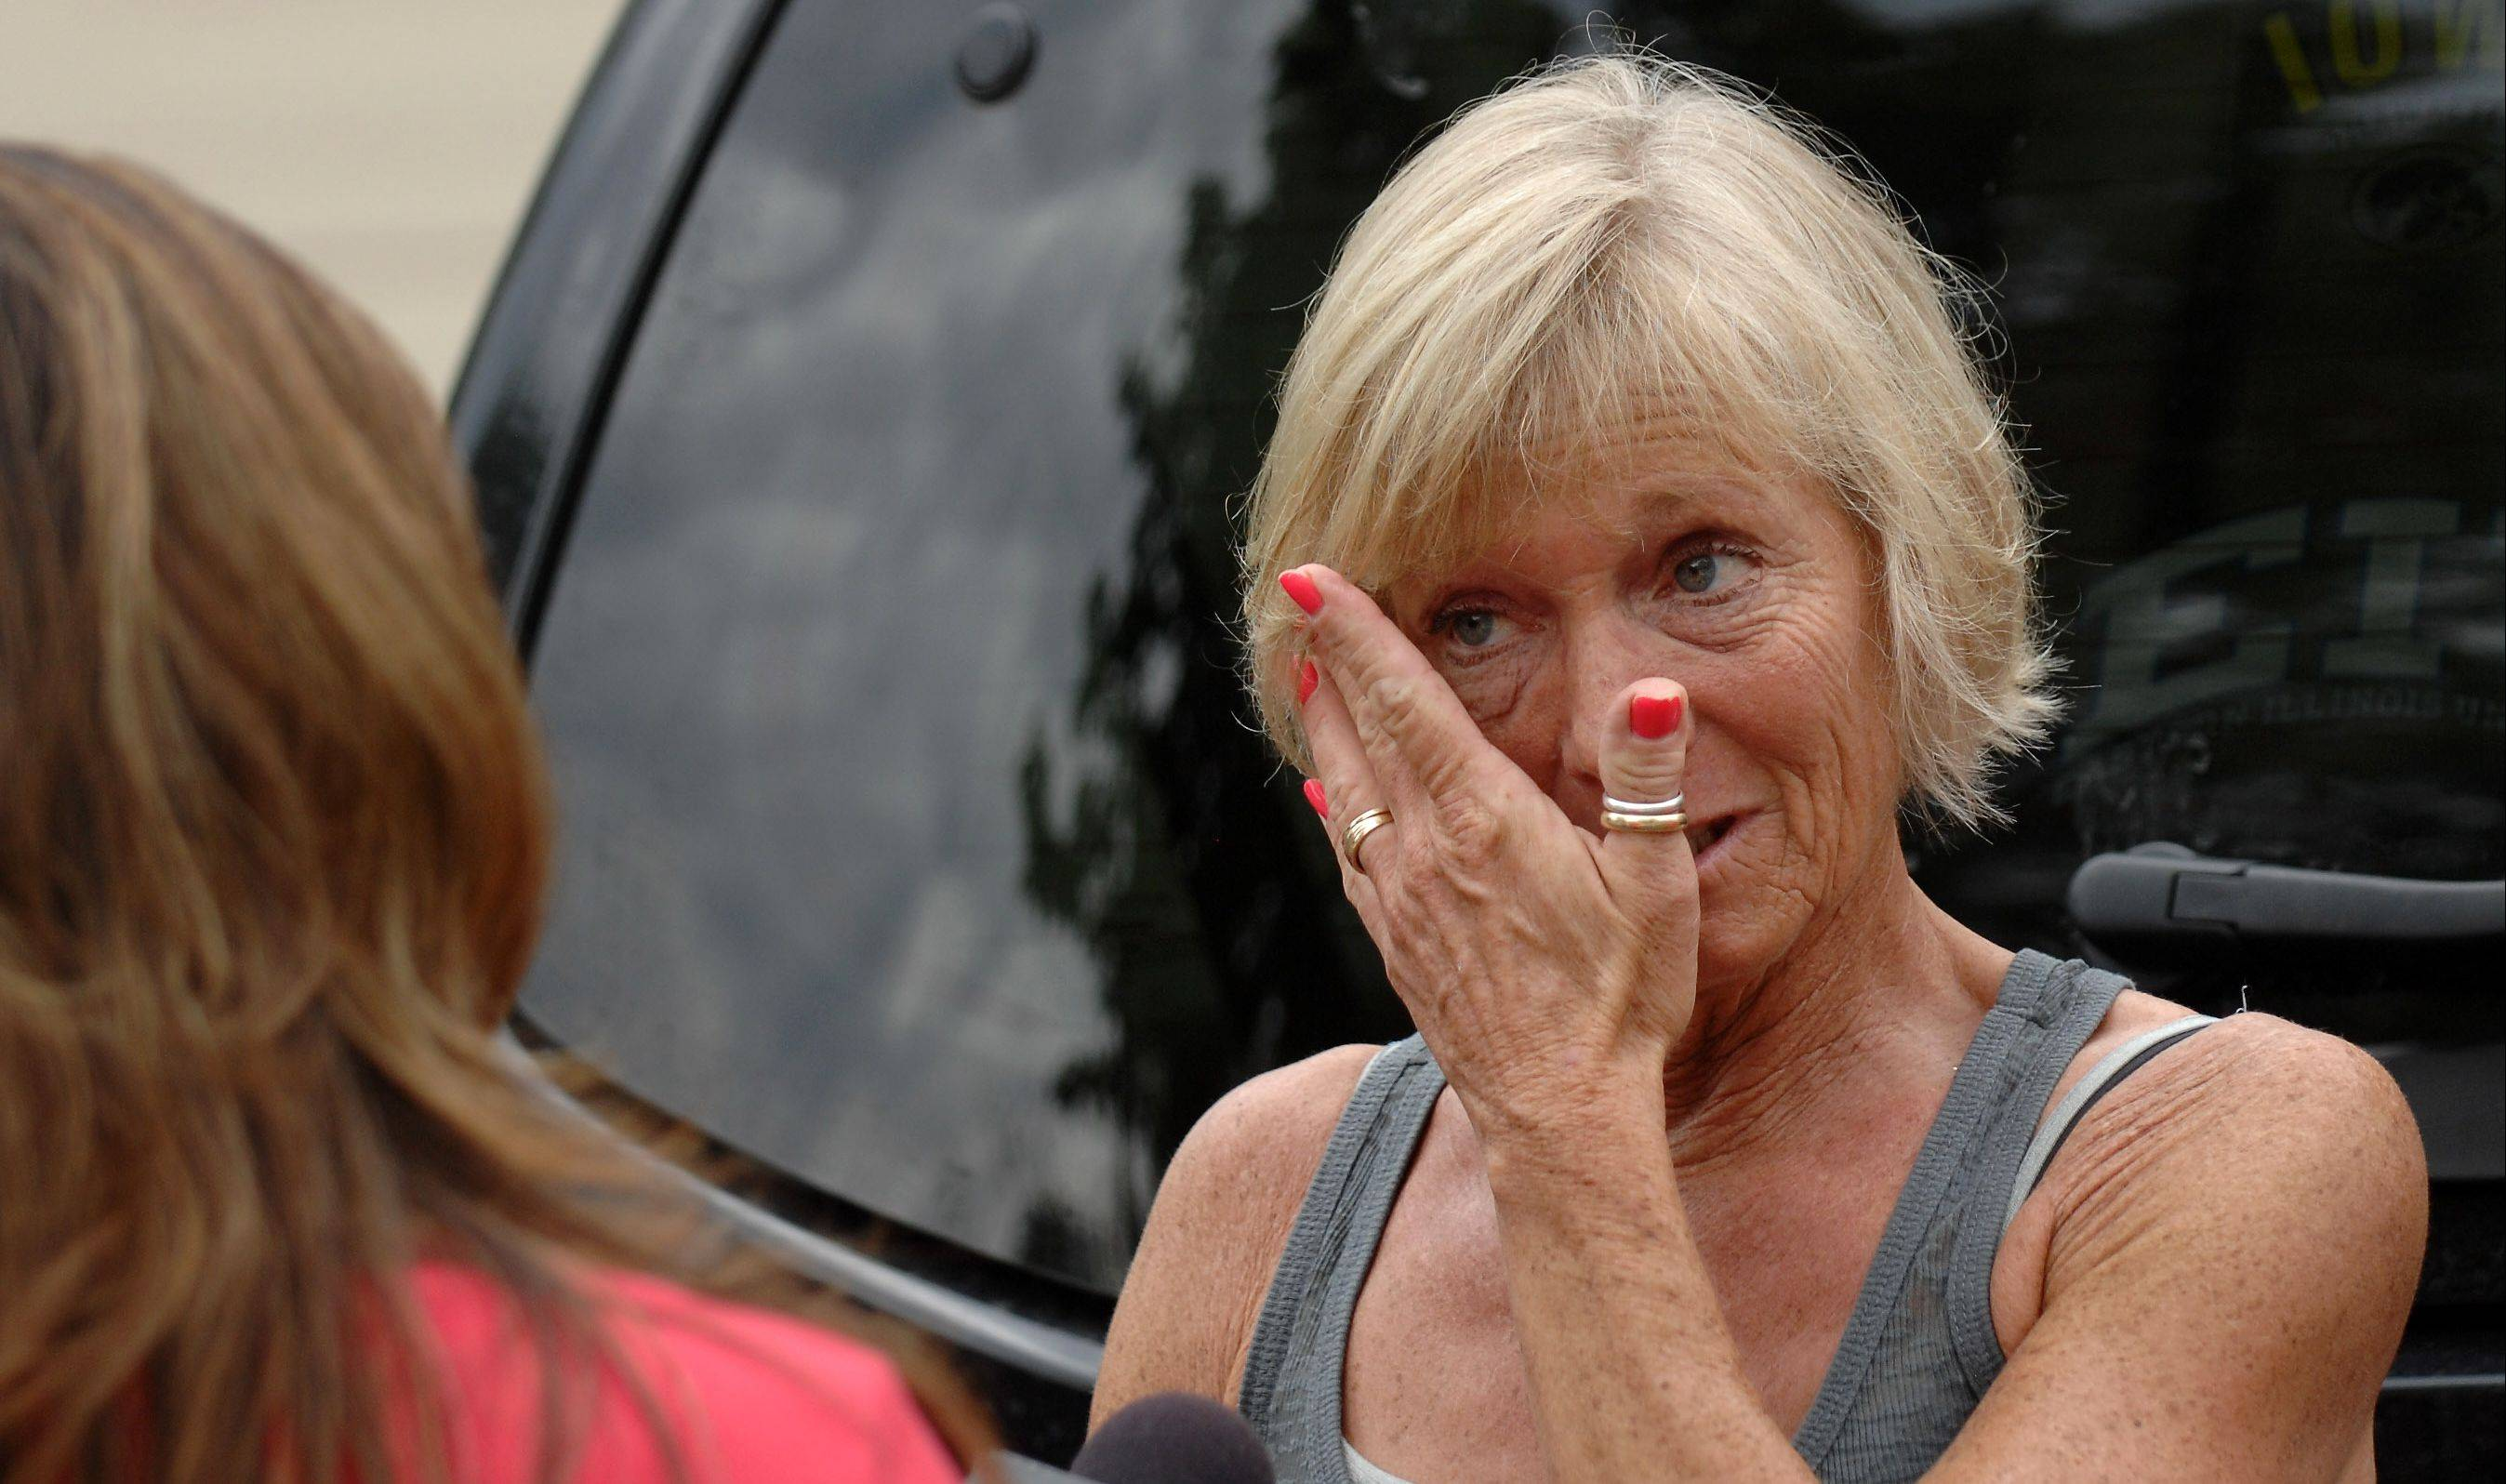 Debbie Vojtsek wipes away a tear while speaking to the media outside the home of her niece Julia Vojtsek in Algonquin. Julia said her boyfriend, John Larimer of Crystal Lake, saved her life by shielding her from the bullets that claimed him and 11 others in the movie theater shooting in Colorado Friday. Debbie Vojtsek talked about his bravery and how appreciative her family is for the actions that saved the life of her niece.